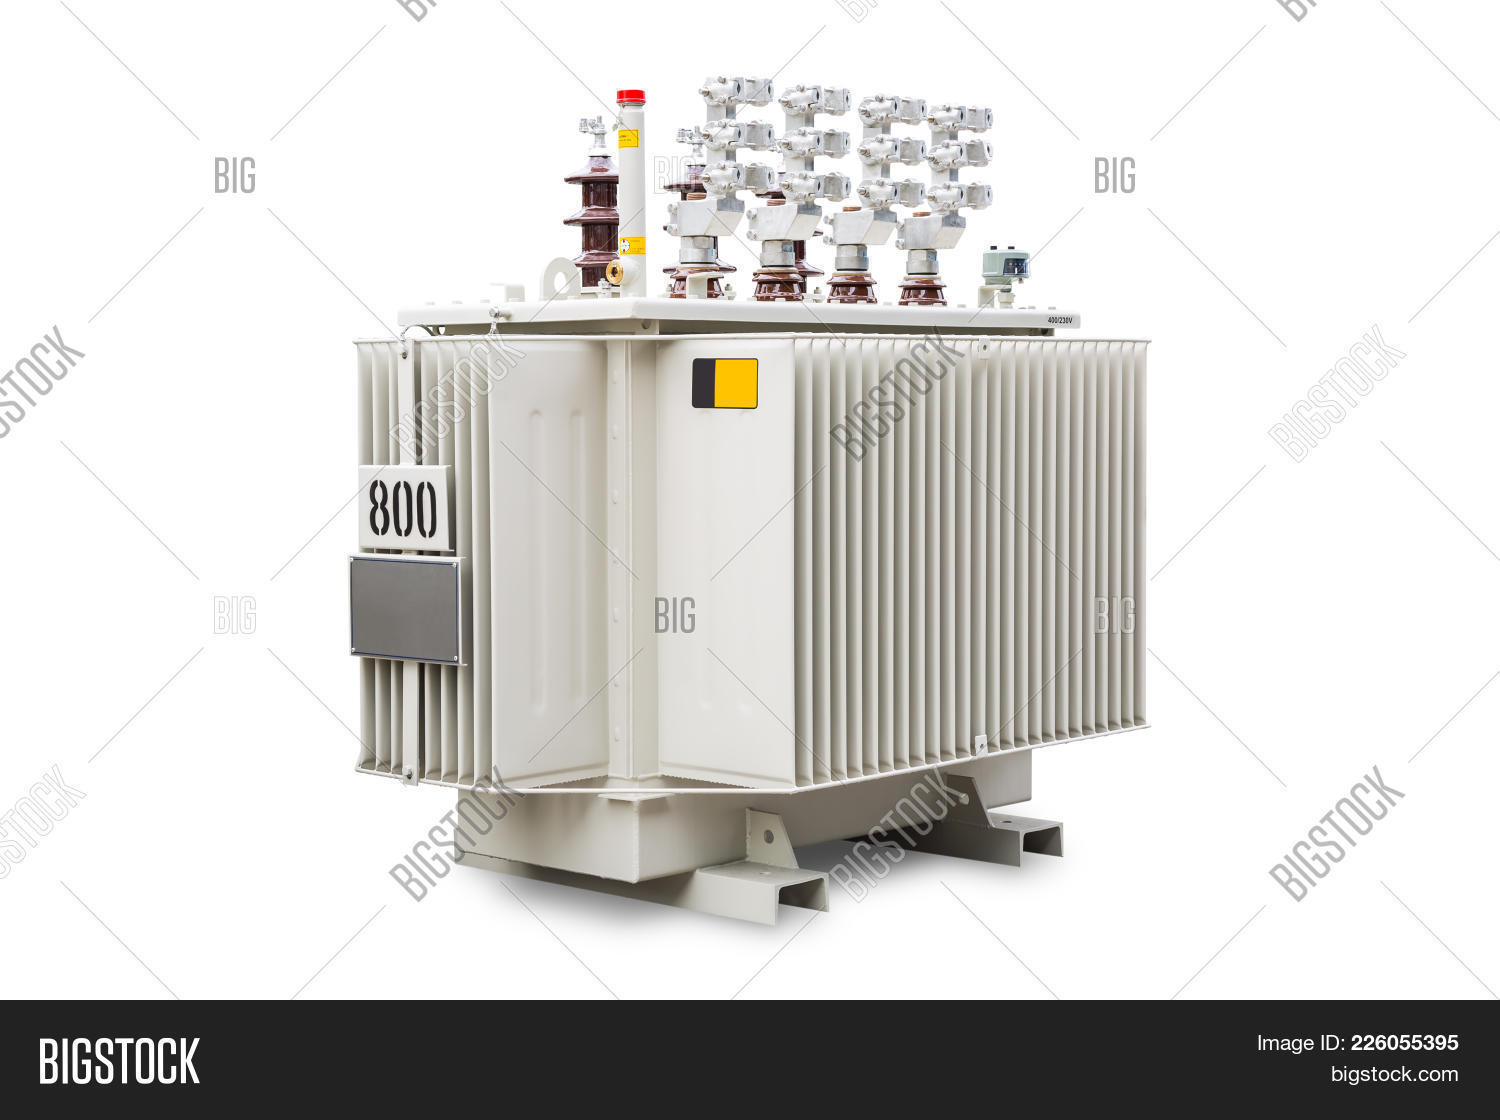 800 Kva Oil Immersed Image & Photo (Free Trial) | Bigstock